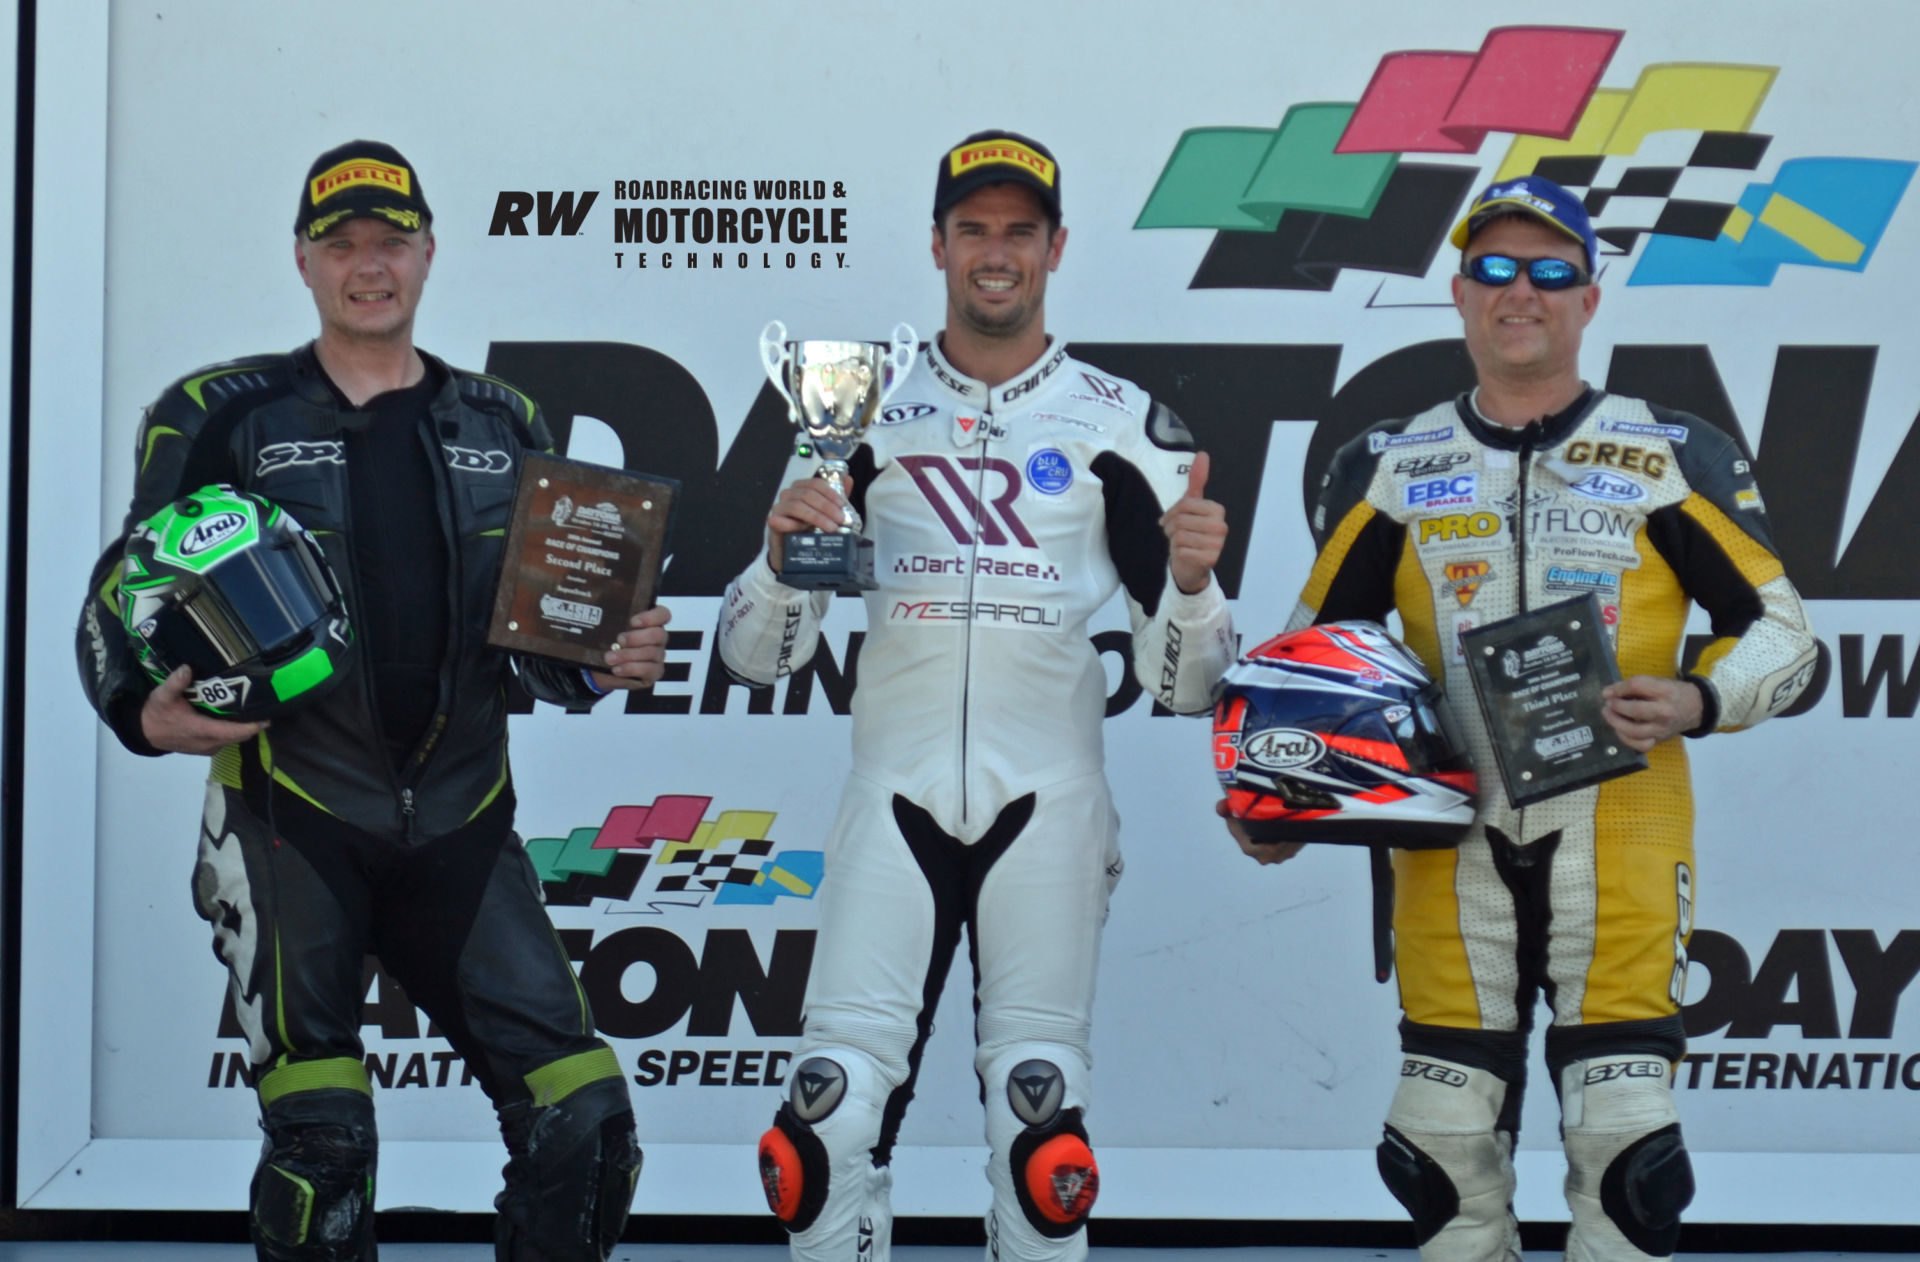 ASRA Sportbike race winner Simone Corsi (center), runner-up Jason Farrell (left), and third-place finisher Greg Melka (right) on the podium in Victory Lane at Daytona International Speedway. Photo by David Swarts.